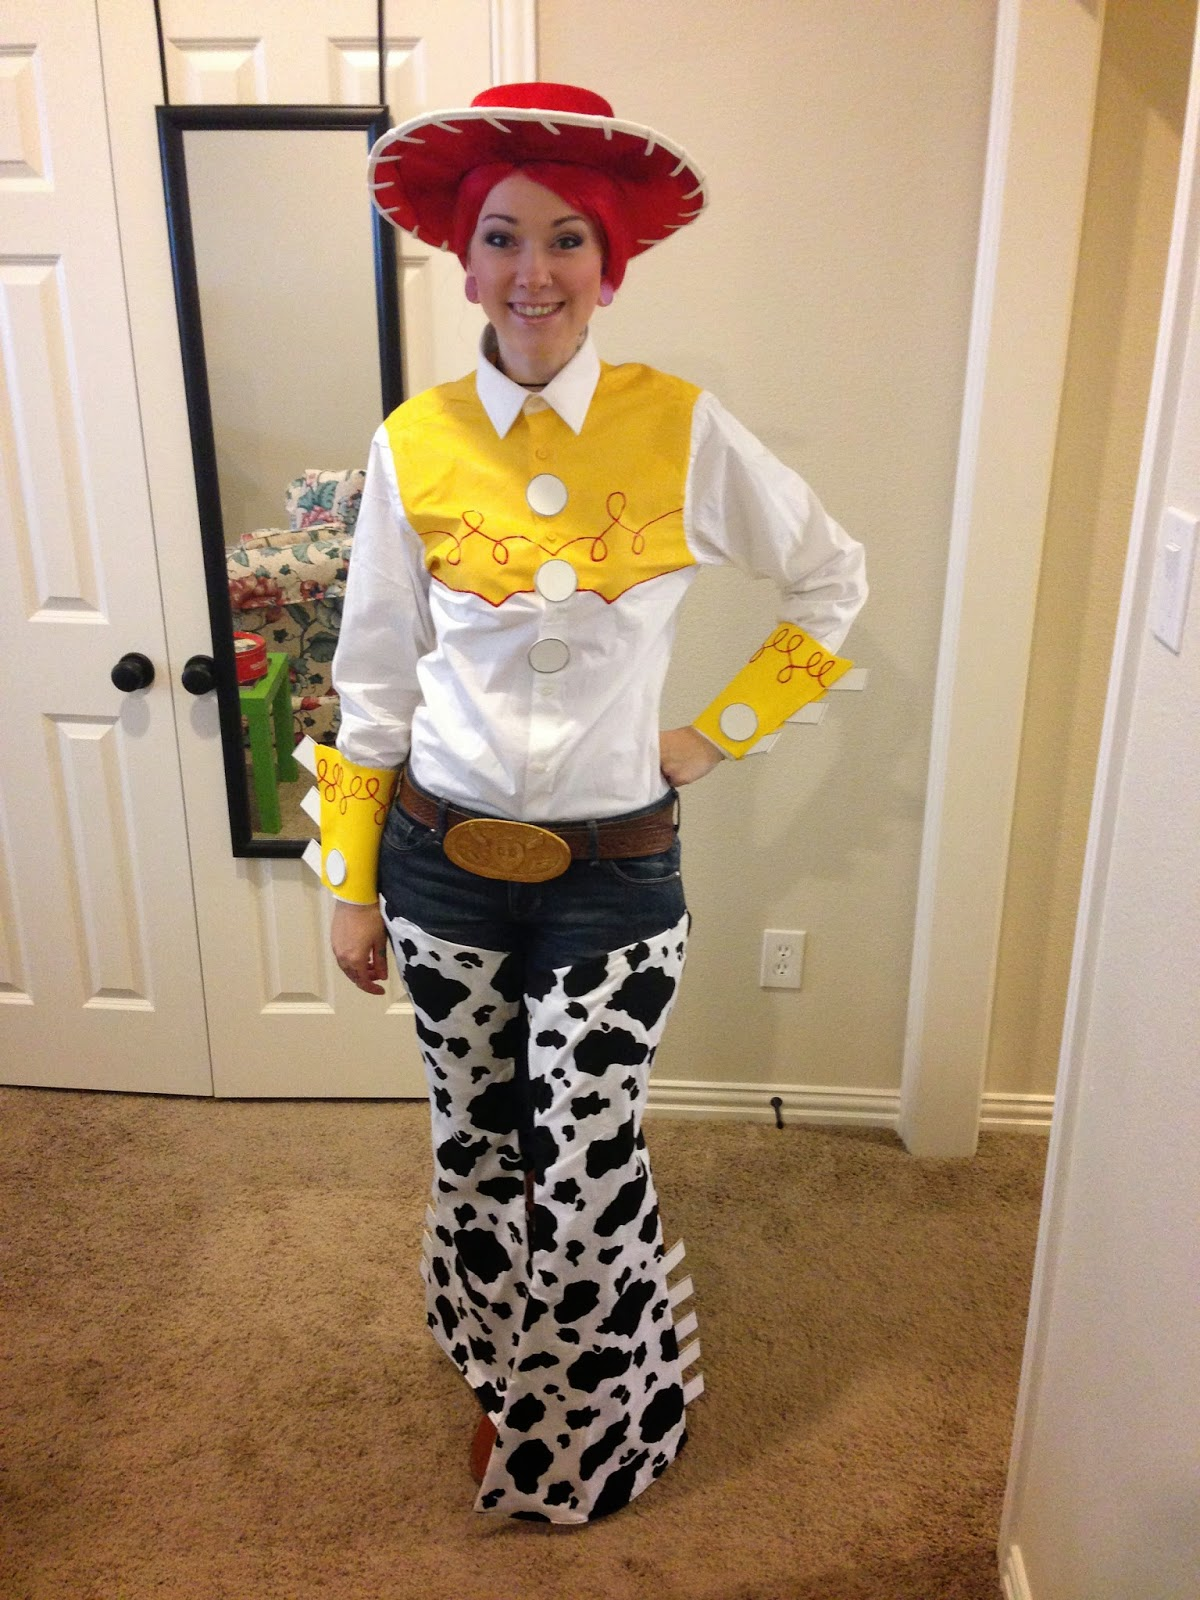 Omglitzy tutorial jessie from toy story cosplay i attached my chaps to my jeans with safety pins i tried using sticky velcro so i wouldnt ruin a pair of jeans but the velcro did not stick solutioingenieria Images